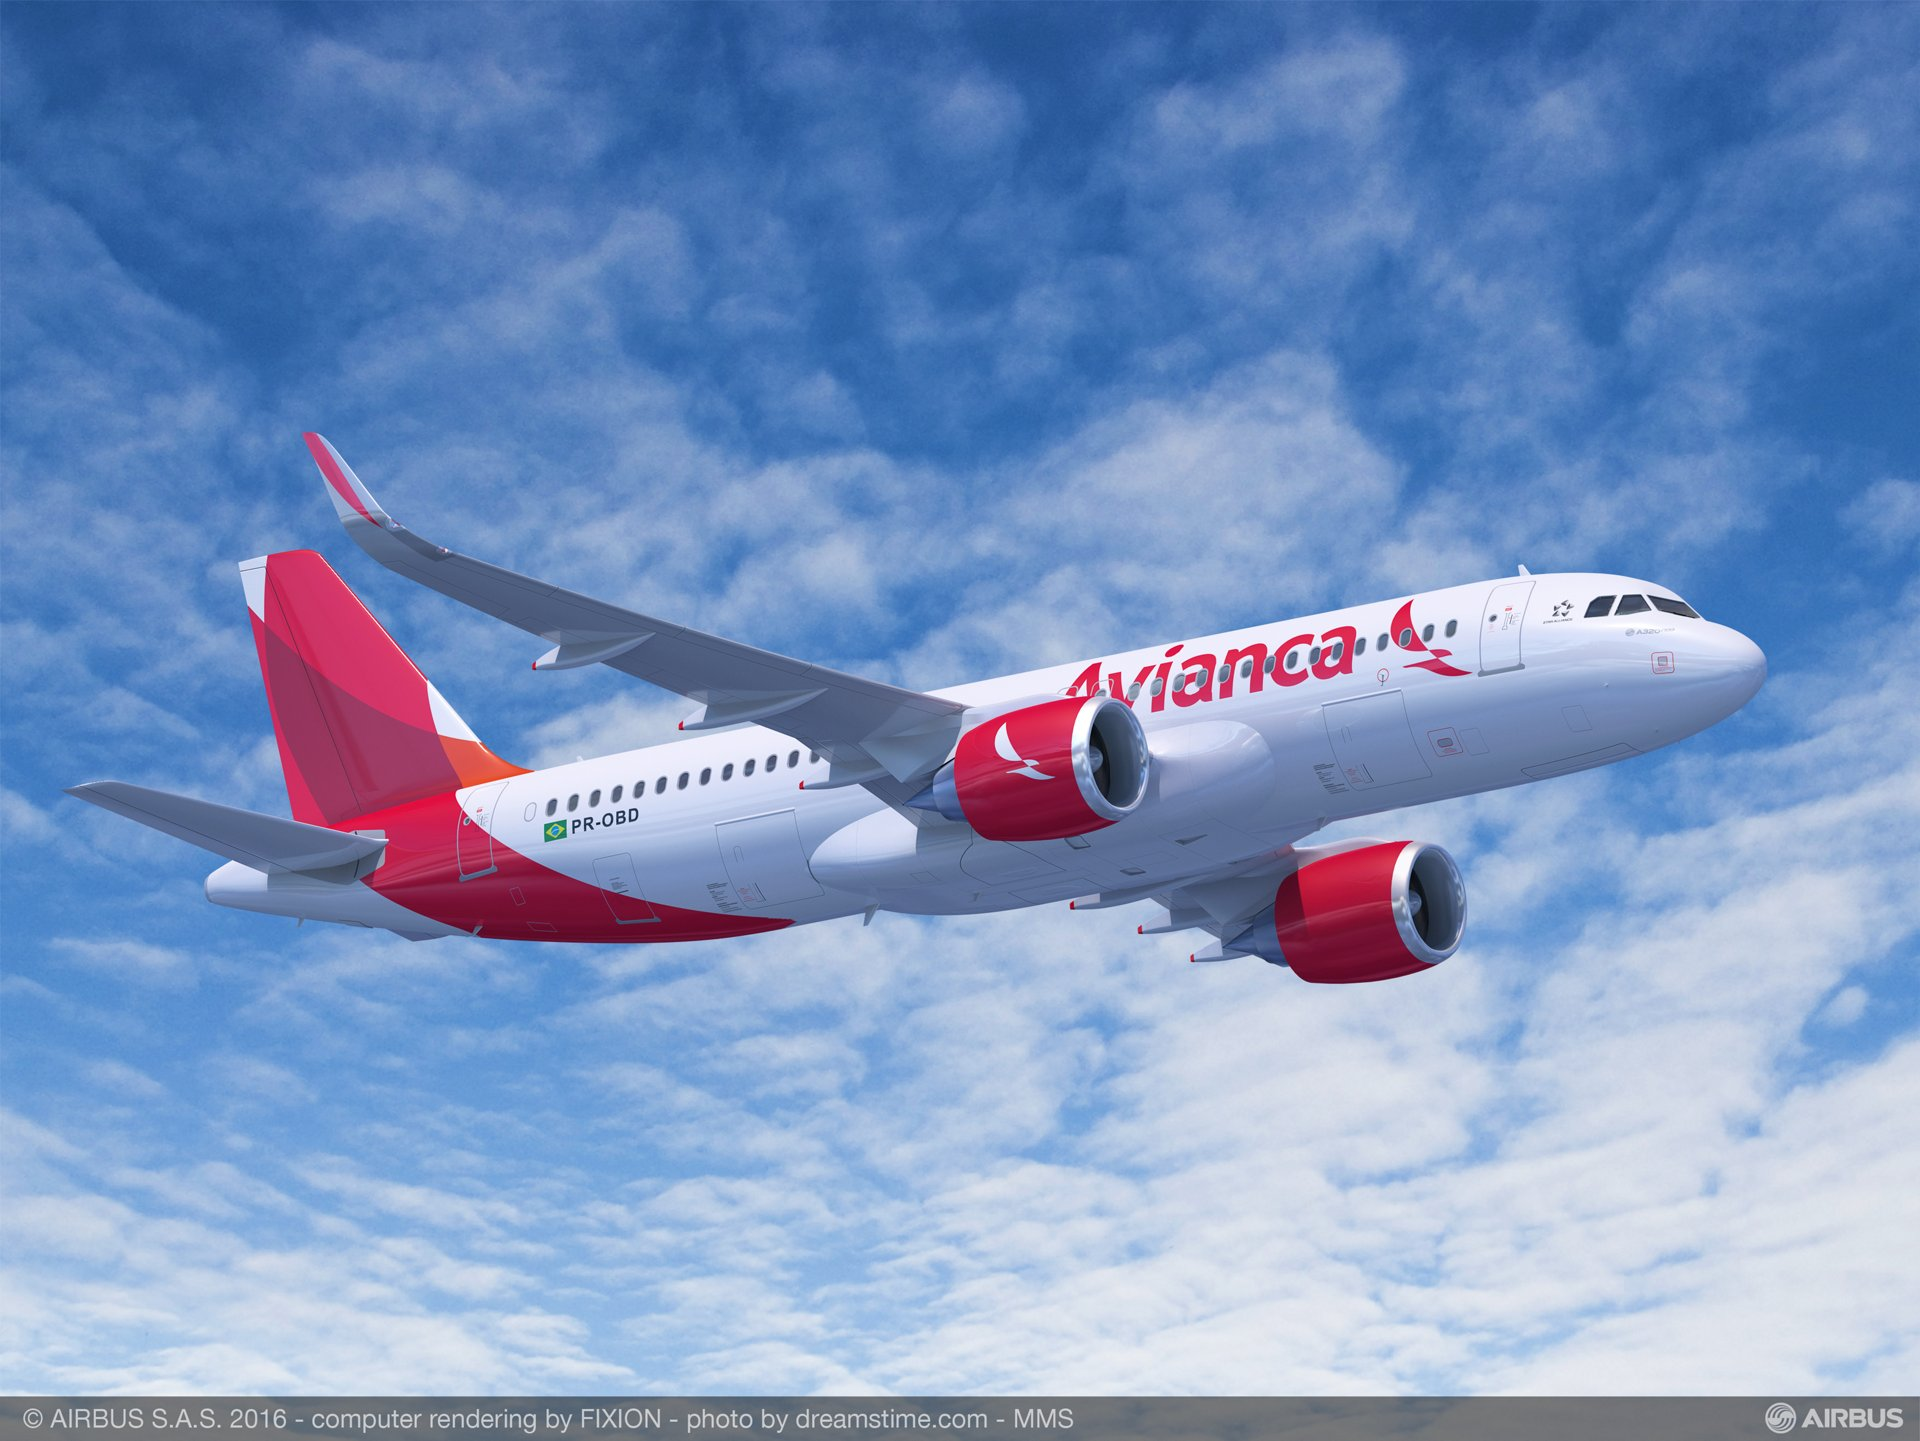 Avianca Brasil will add 62 A320neo Family aircraft as part of its fleet renewal and network growth strategy, with the purchase agreement finalized by Synergy Aerospace Corporation – which is the largest shareholder of Colombia-based Avianca and the owner of Avianca Brasil